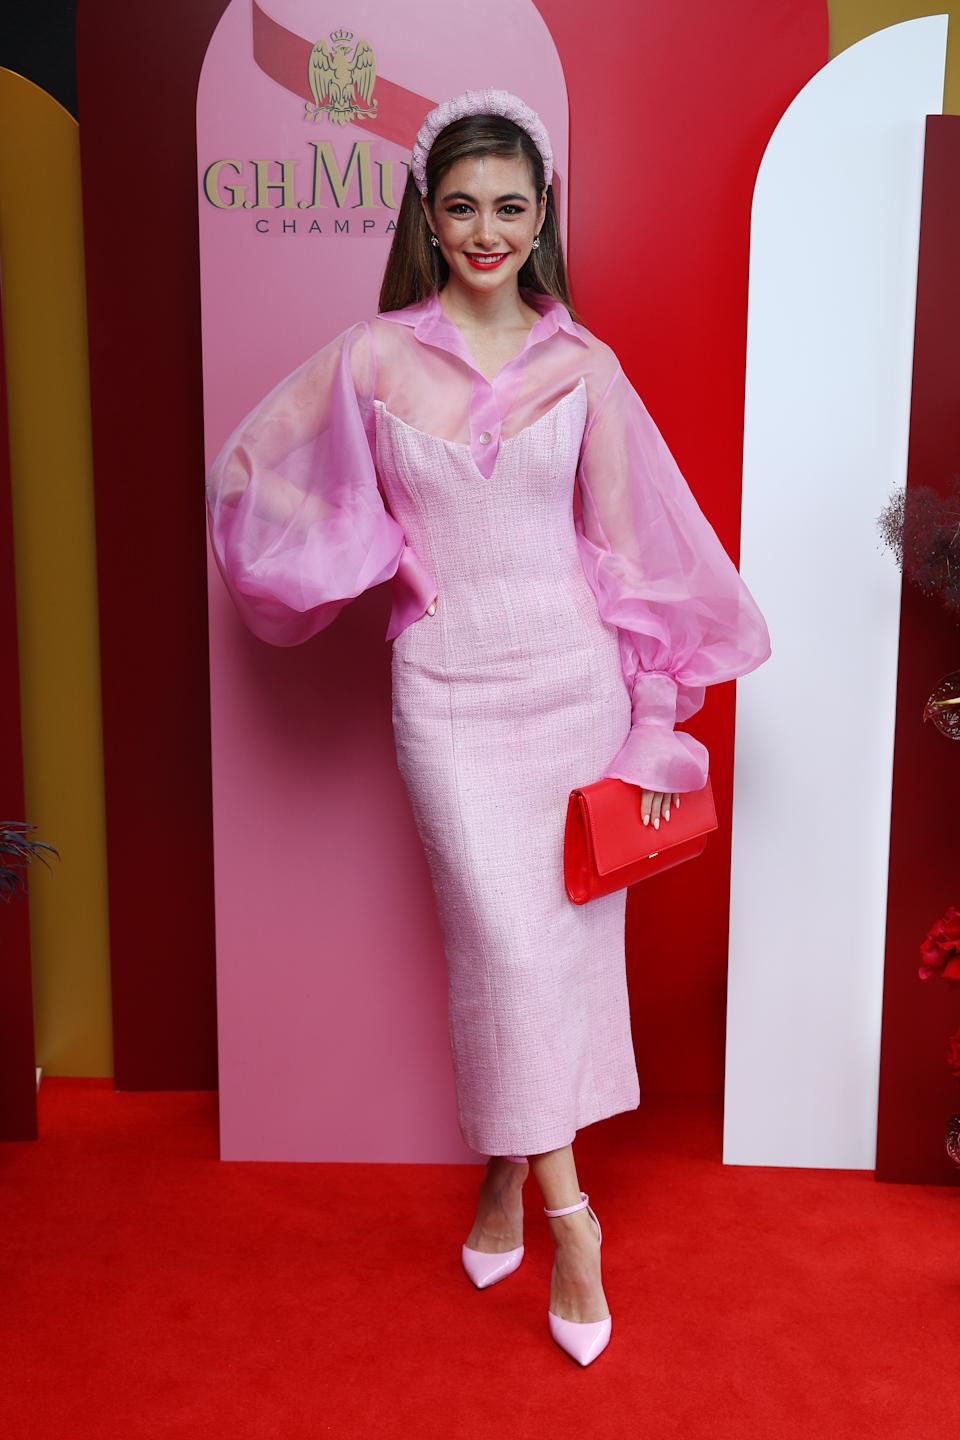 Francesca Hung attends the G.H. Mumm Melbourne Cup Carnival celebrations on November 03, 2020 in Sydney, Australia.